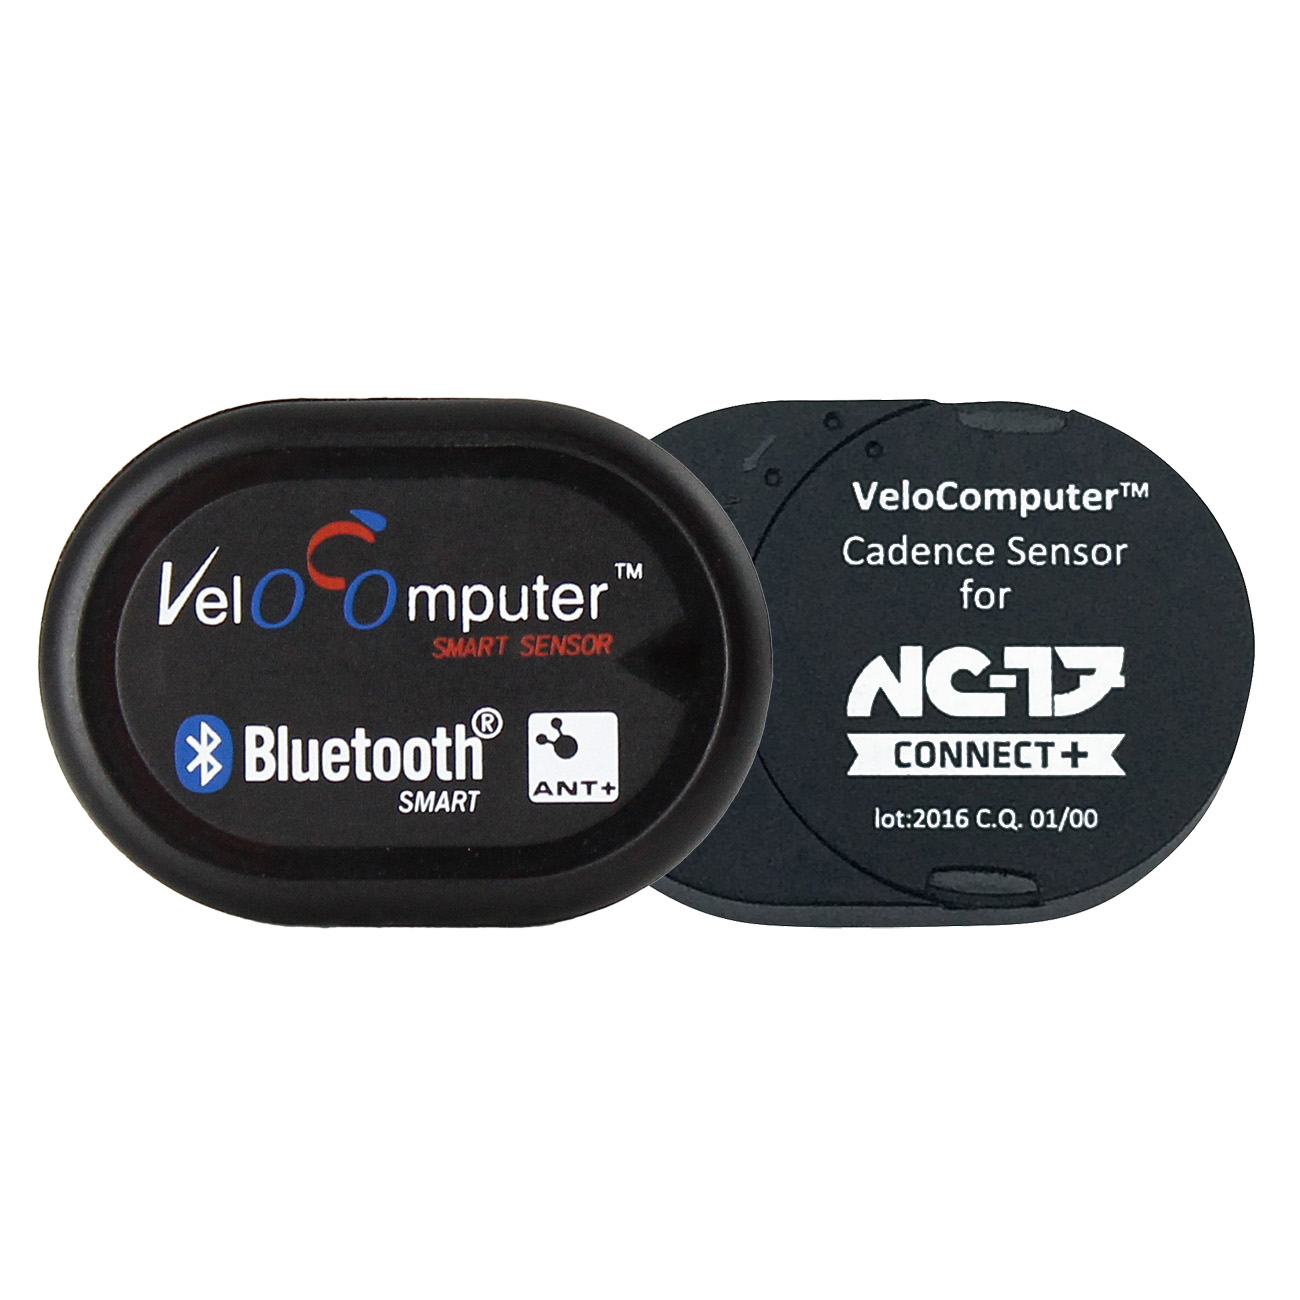 NC-17 Connect VeloComputer VC#5.1<br/>Trittfrequenz / Cadence, ANT+ und Bluetooth 4.0<br/>